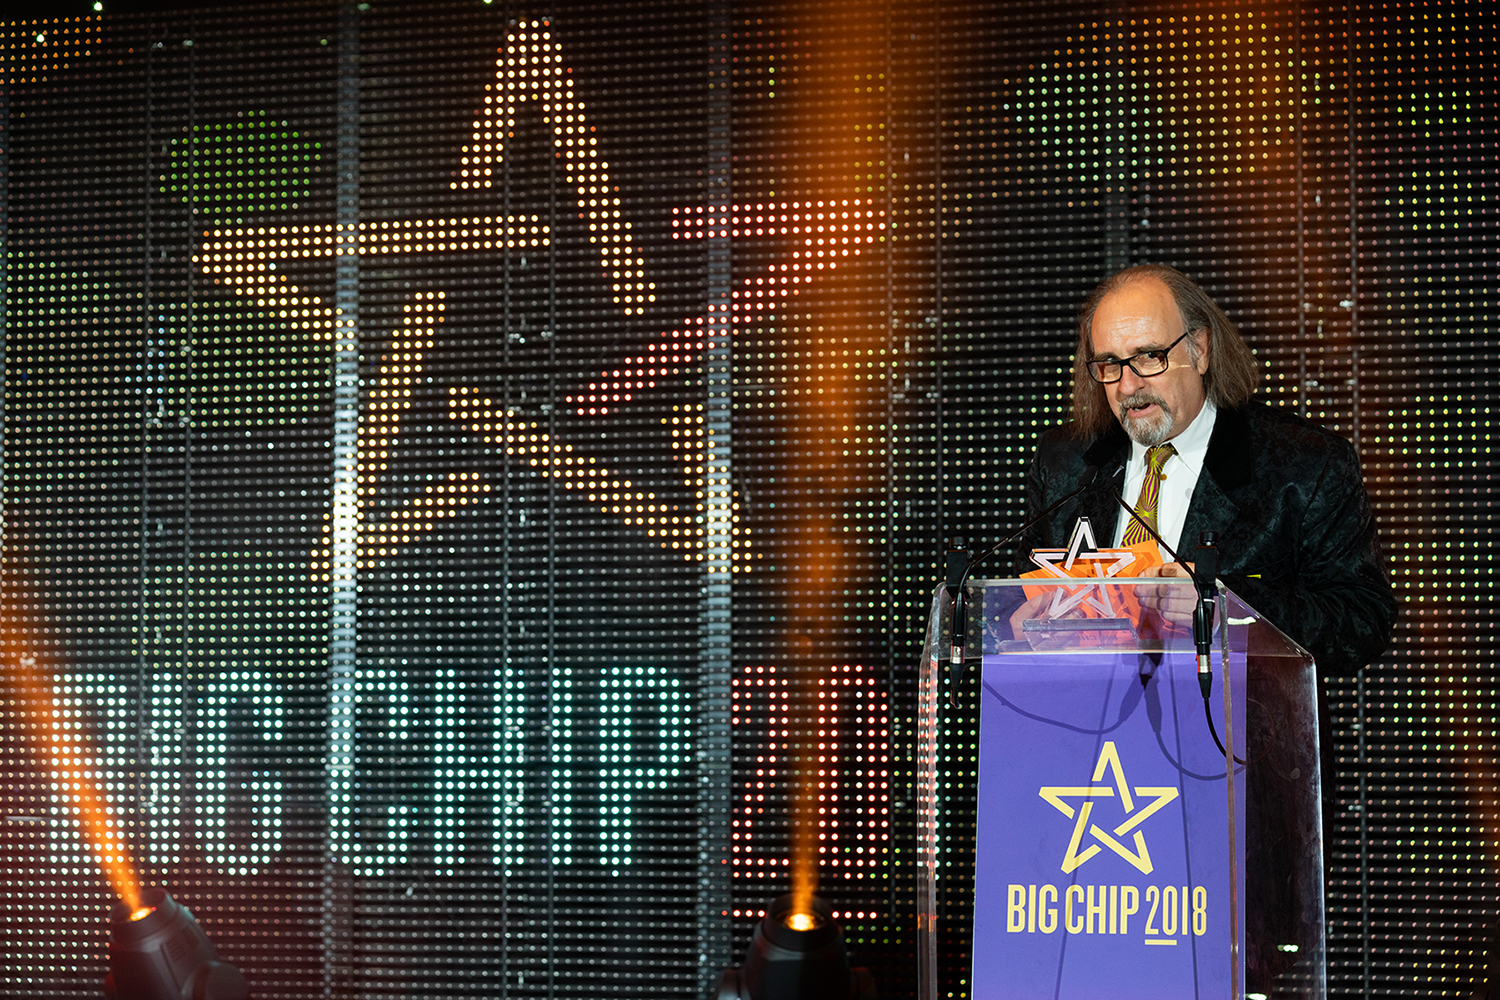 Malcolm Garrett at Big Chip 2018